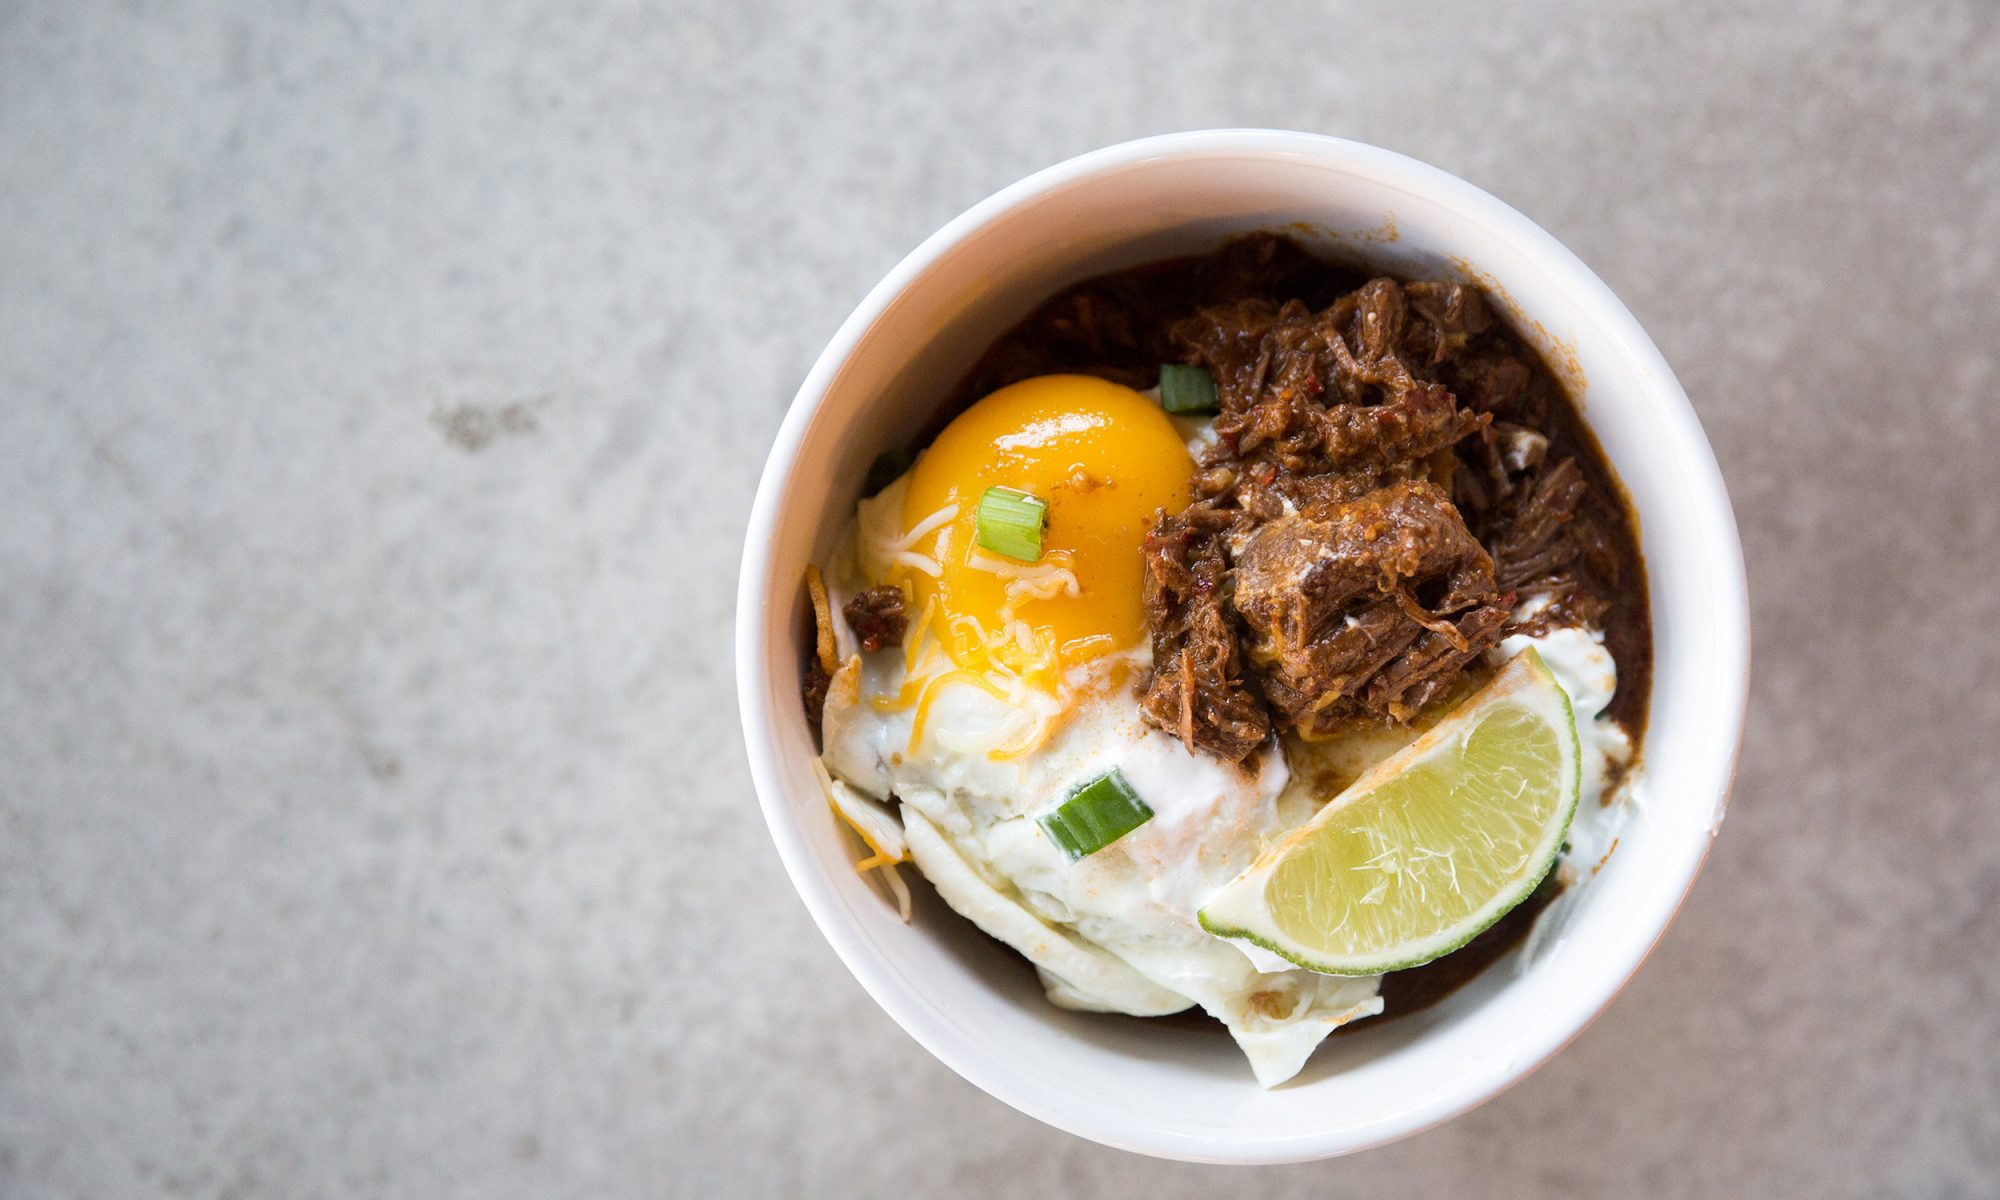 Make Texas Red Chili and Eggs for Your Super Bowl Brunch